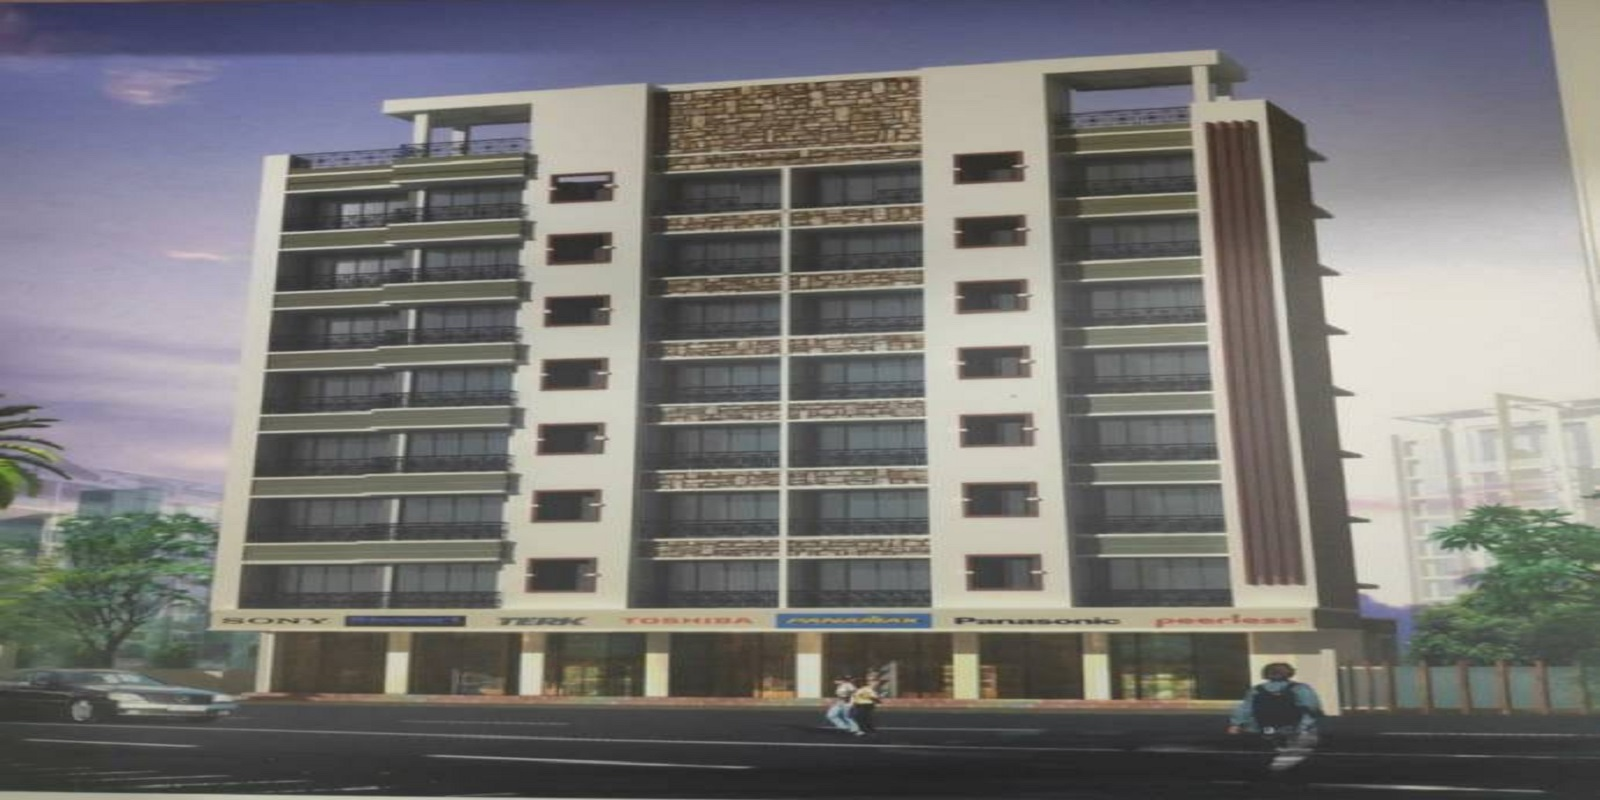 bhutra anjani enclave project project large image1